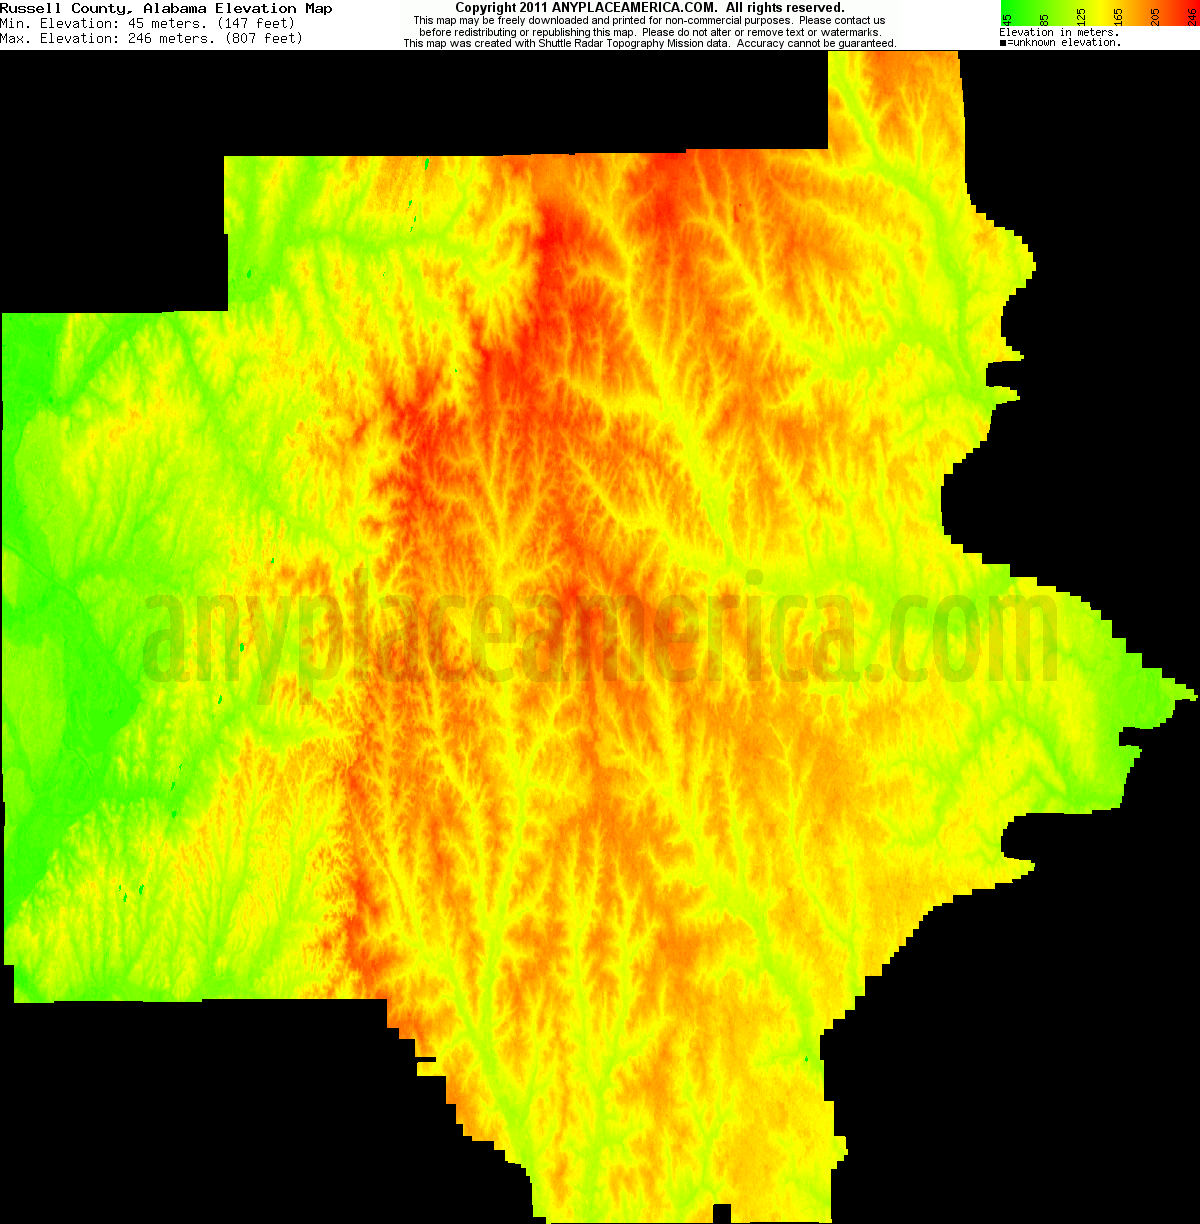 Alabama russell county hatchechubbee - Download Russell County Elevation Map